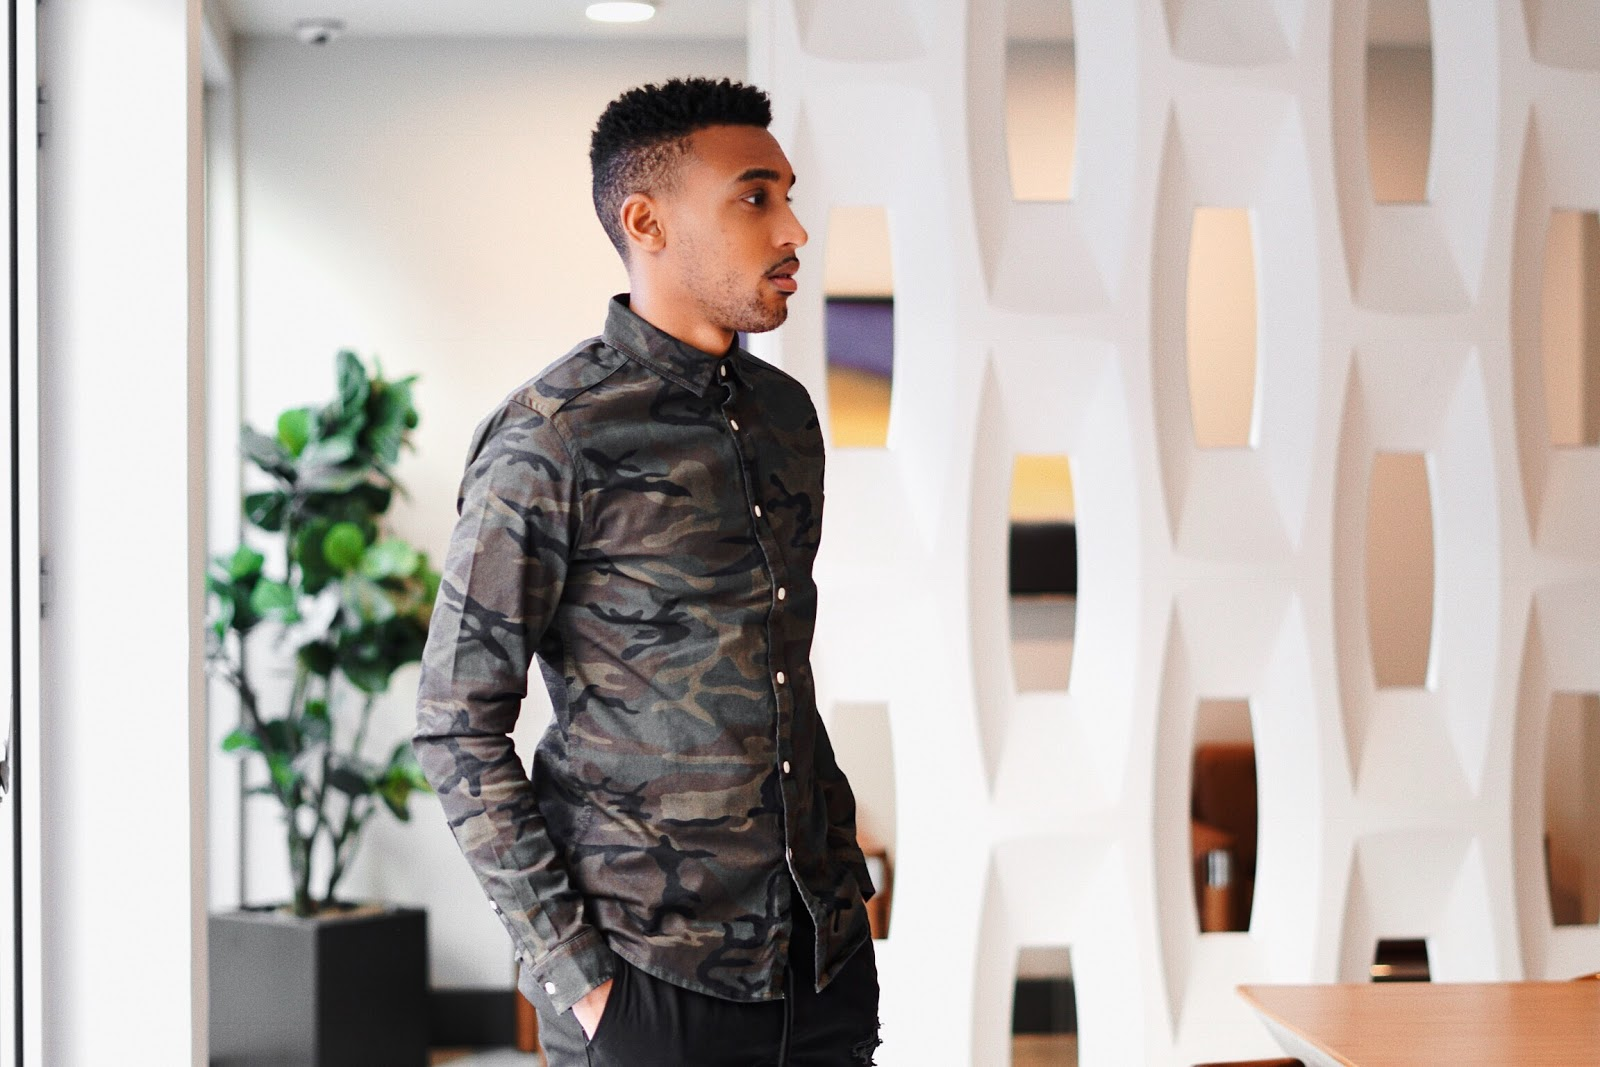 men wearing camo, camo for men, camo asos for men, camouflage mens fashion, men streetstyle camouflage